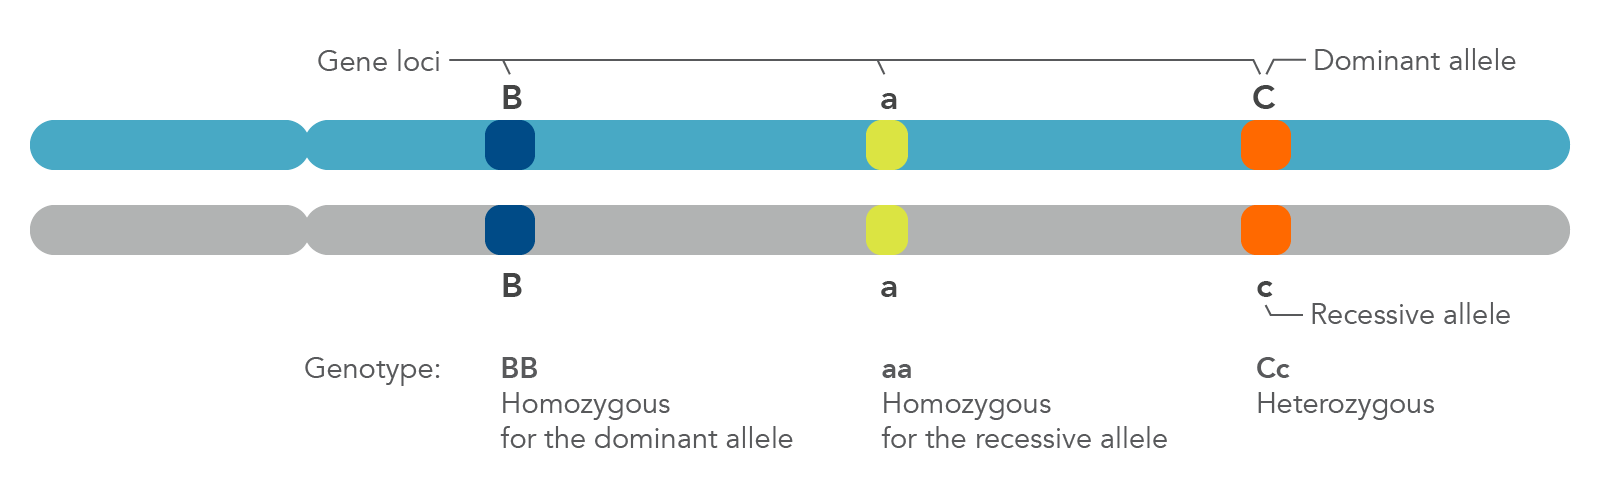 Zygosity is defined by whether a genotype is homozygous (dominant or recessive) or heterozygous.